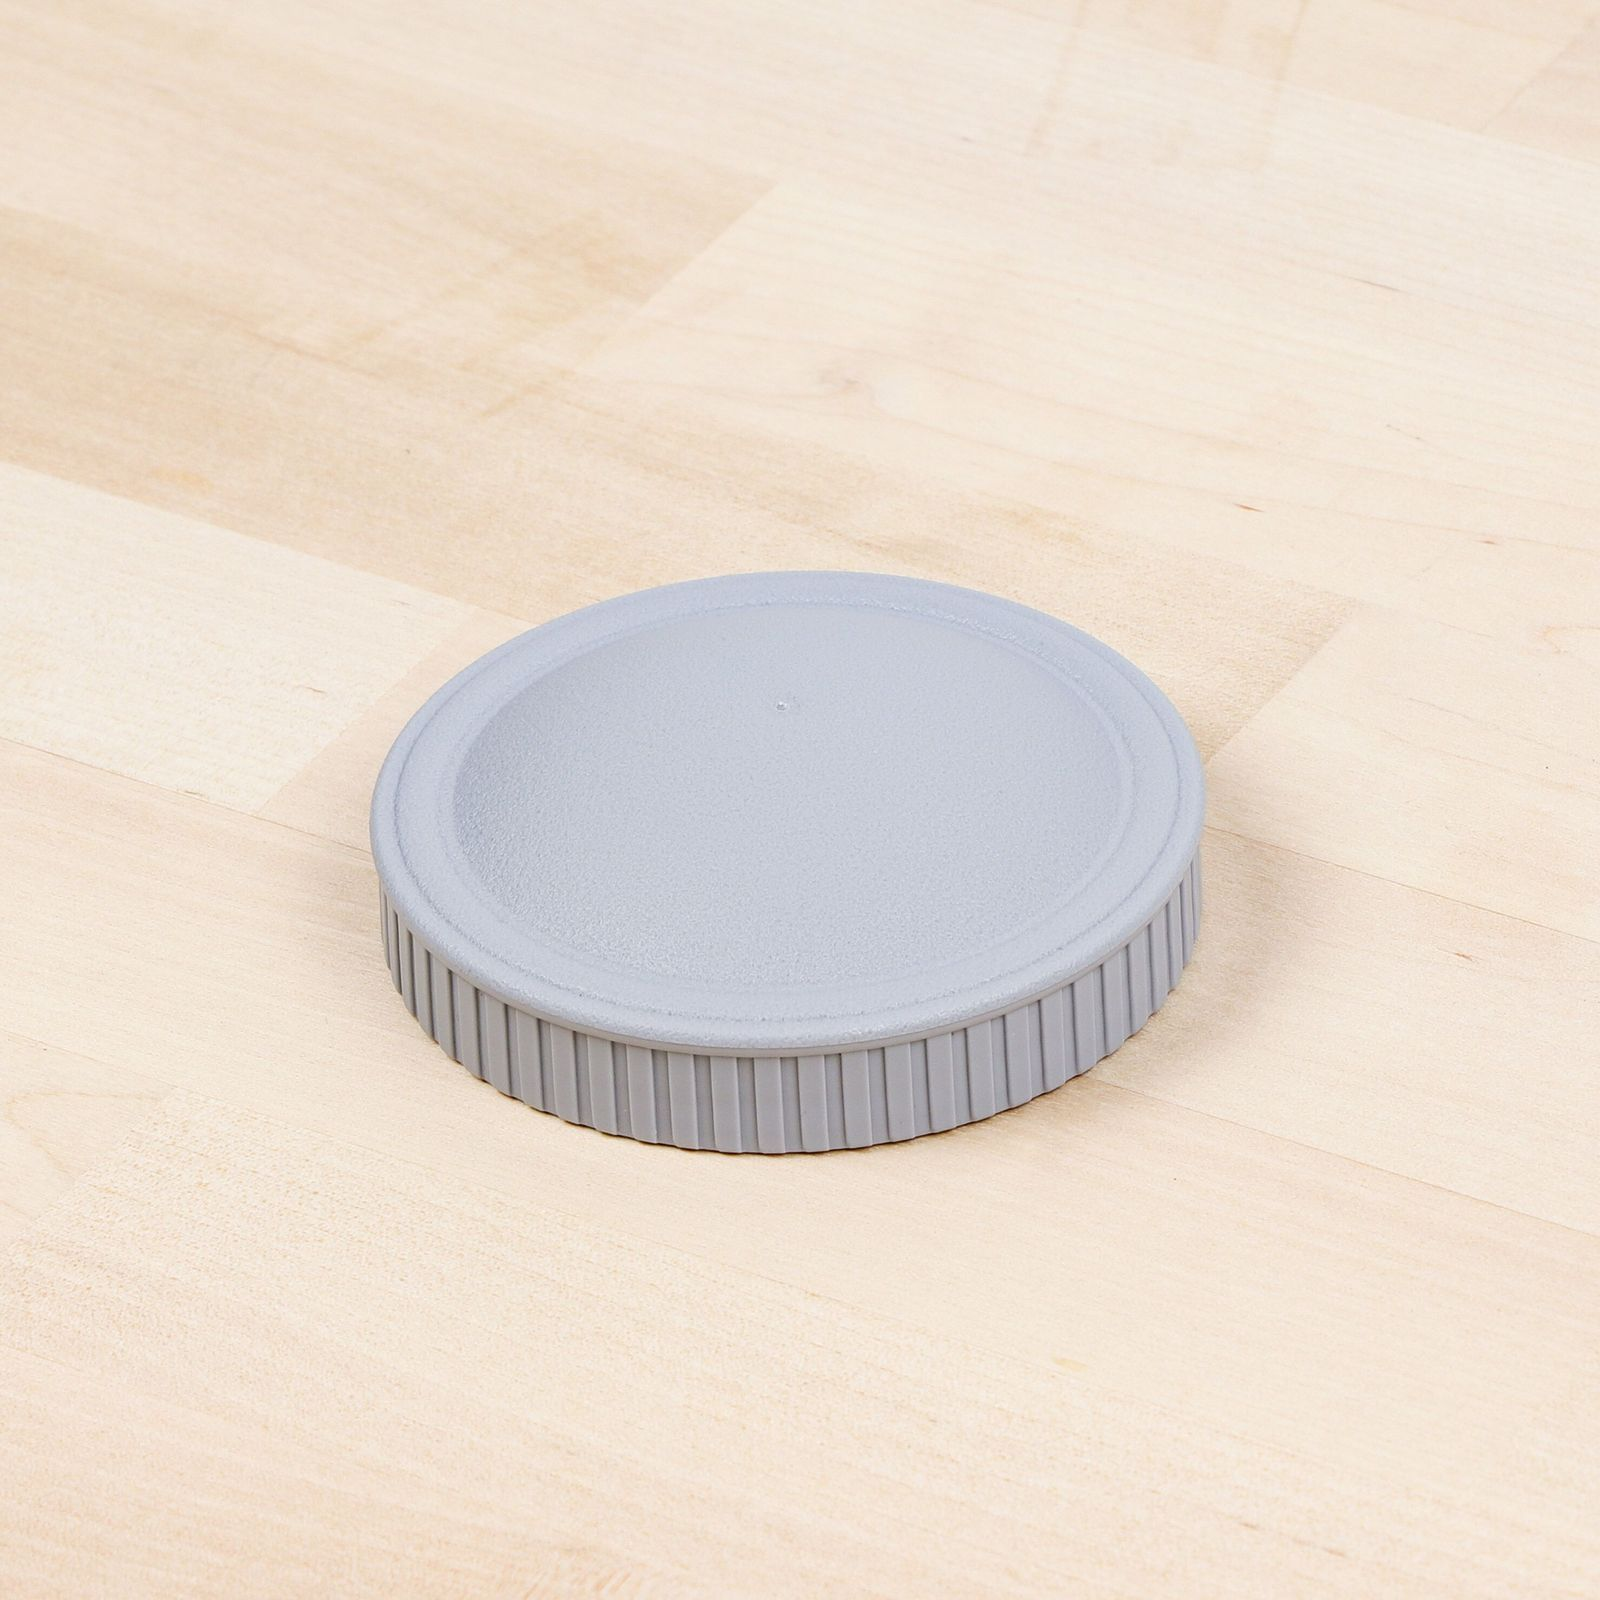 Replay Spare Snack Stack Lids Replay Dinnerware Grey at Little Earth Nest Eco Shop